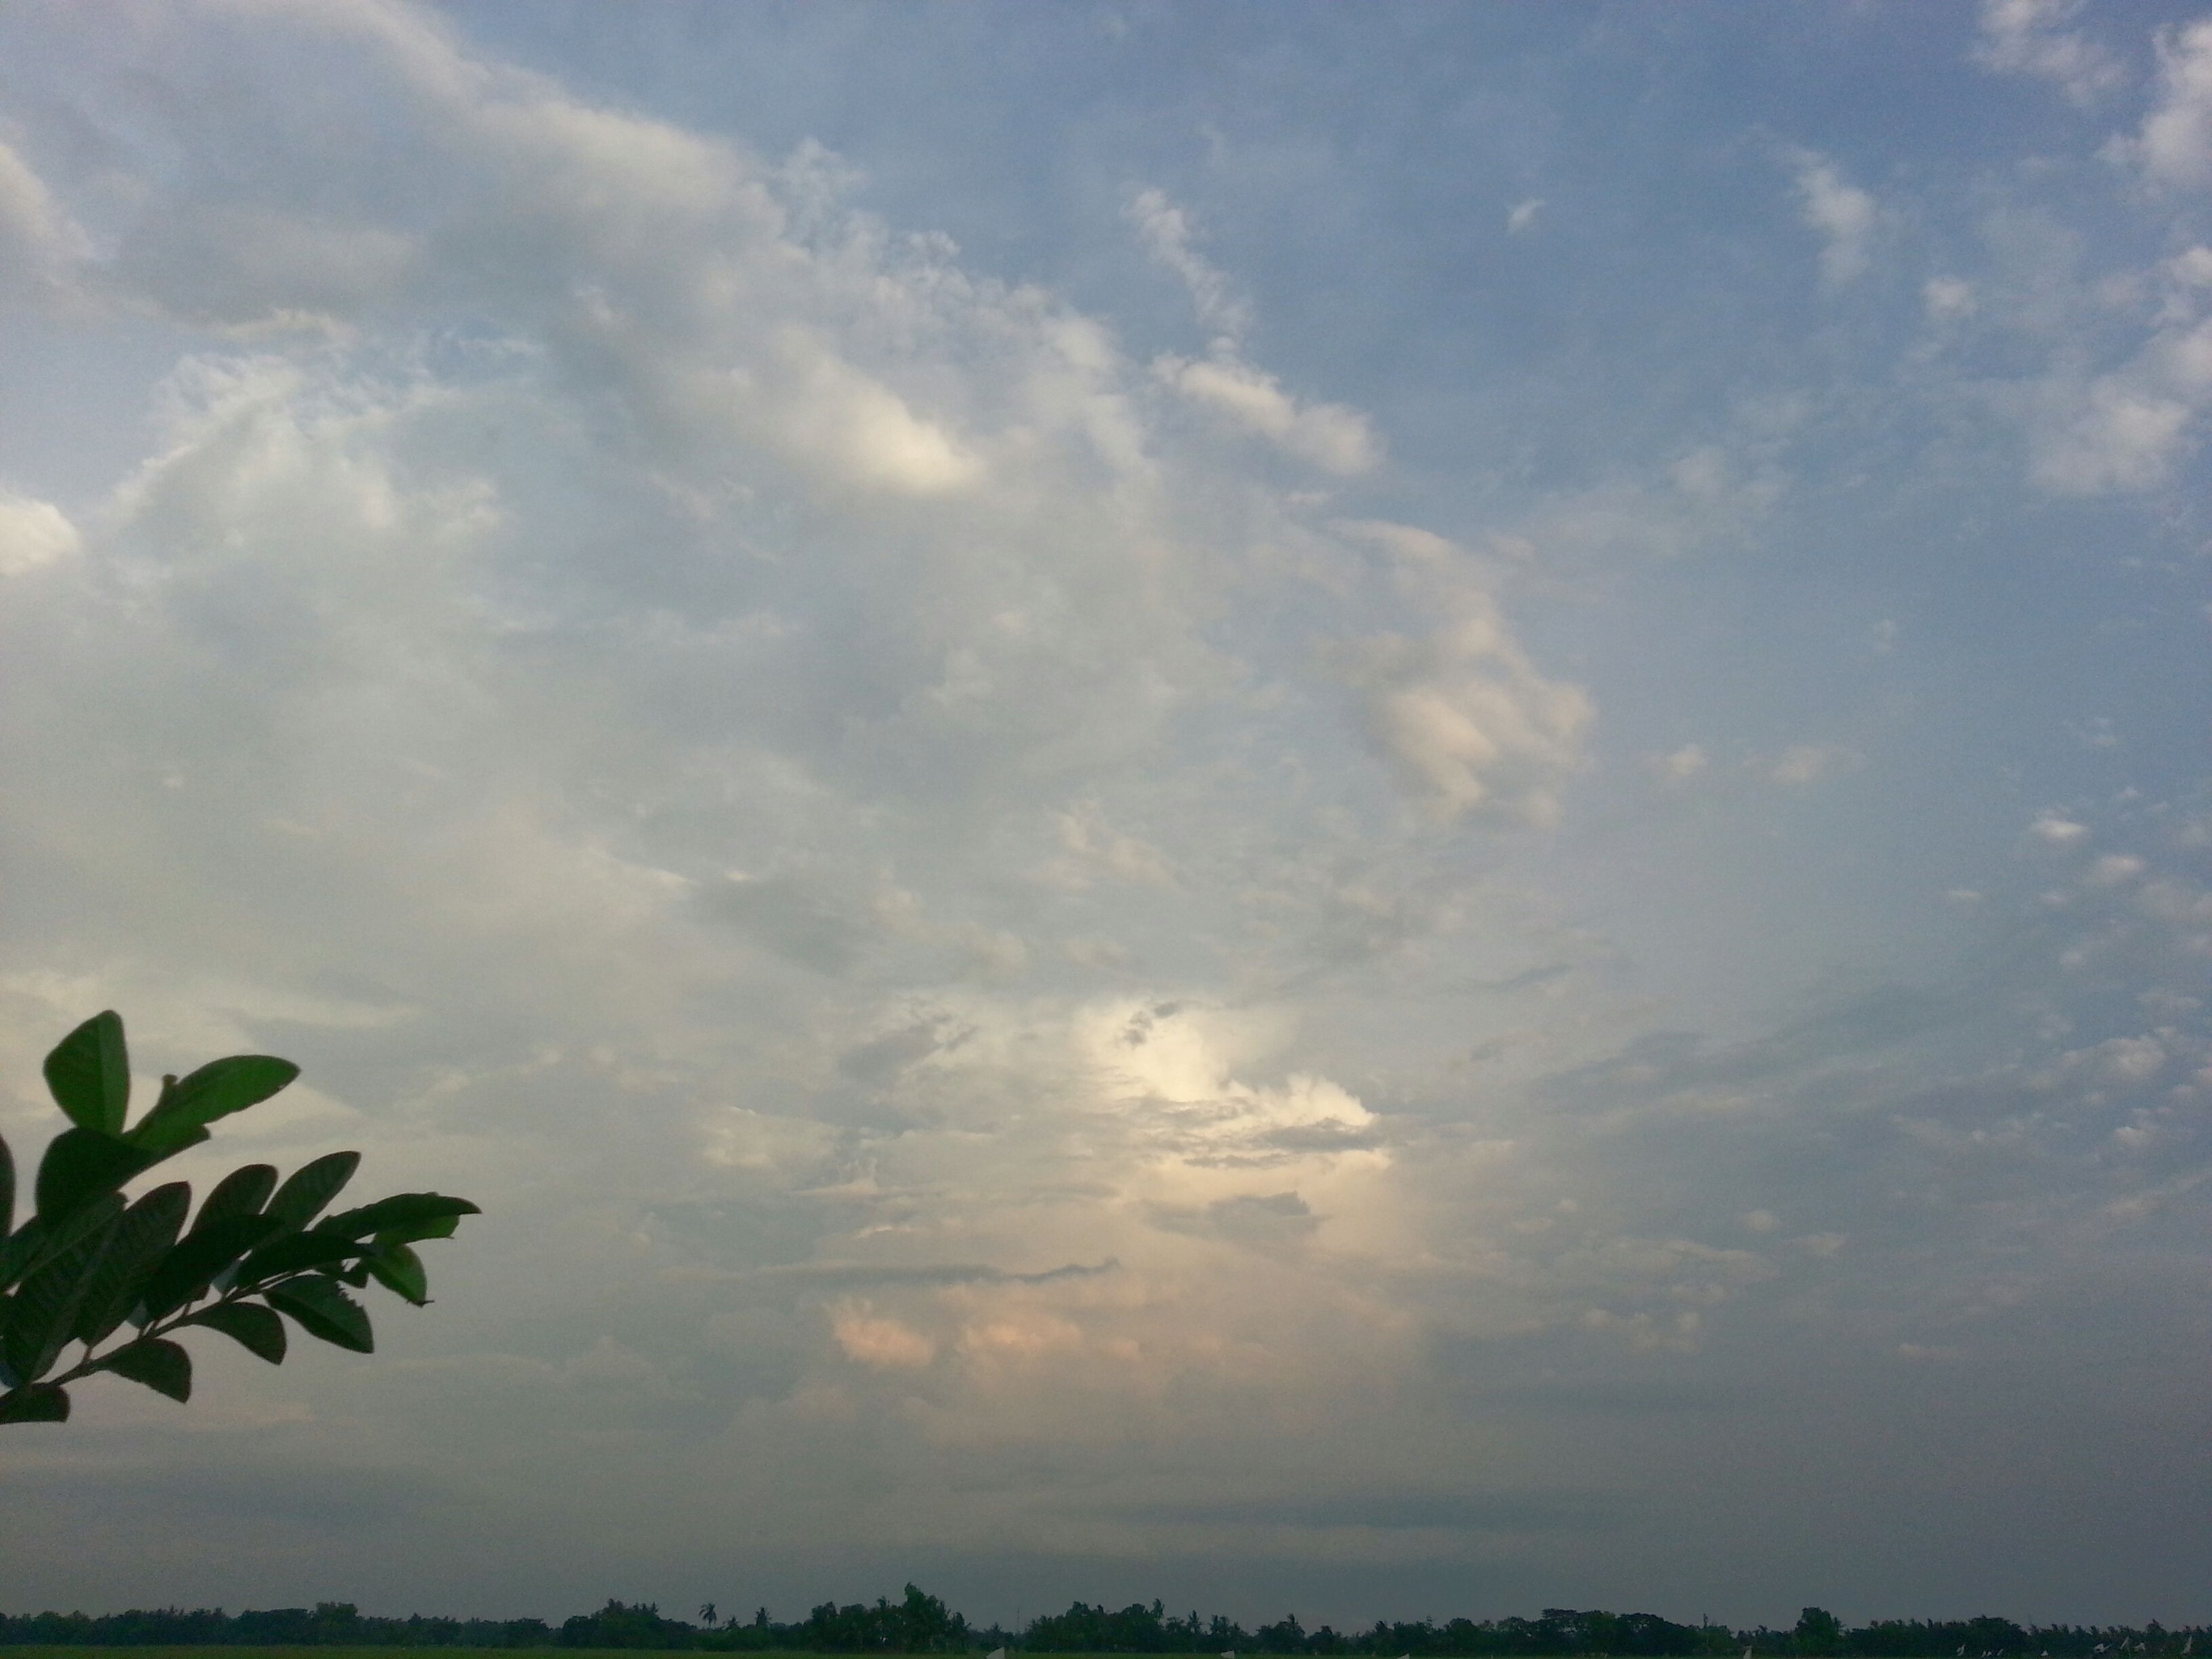 sky, tranquility, tranquil scene, cloud - sky, beauty in nature, scenics, tree, silhouette, nature, cloudy, low angle view, cloud, idyllic, growth, sunset, outdoors, weather, no people, landscape, overcast